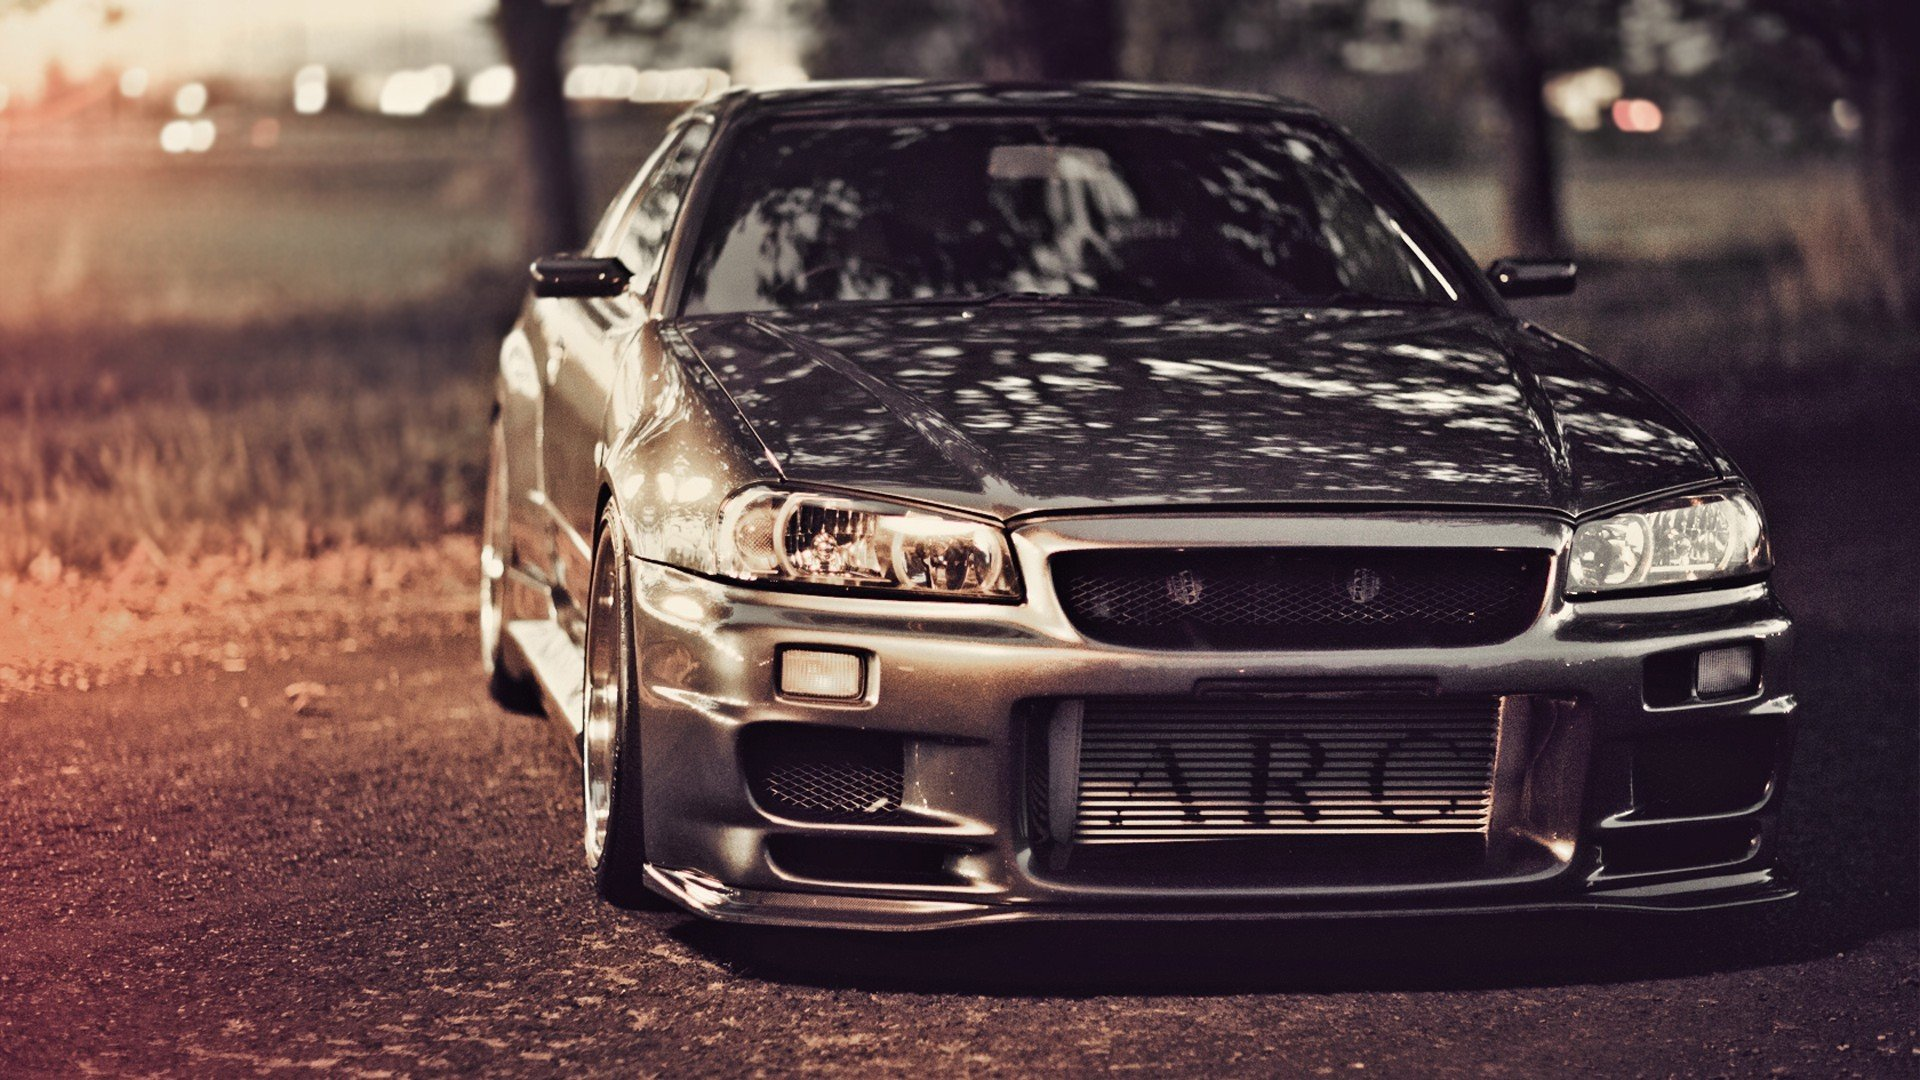 We present you our collection of desktop wallpaper theme: Jdm Wallpapers On Wallpaperdog